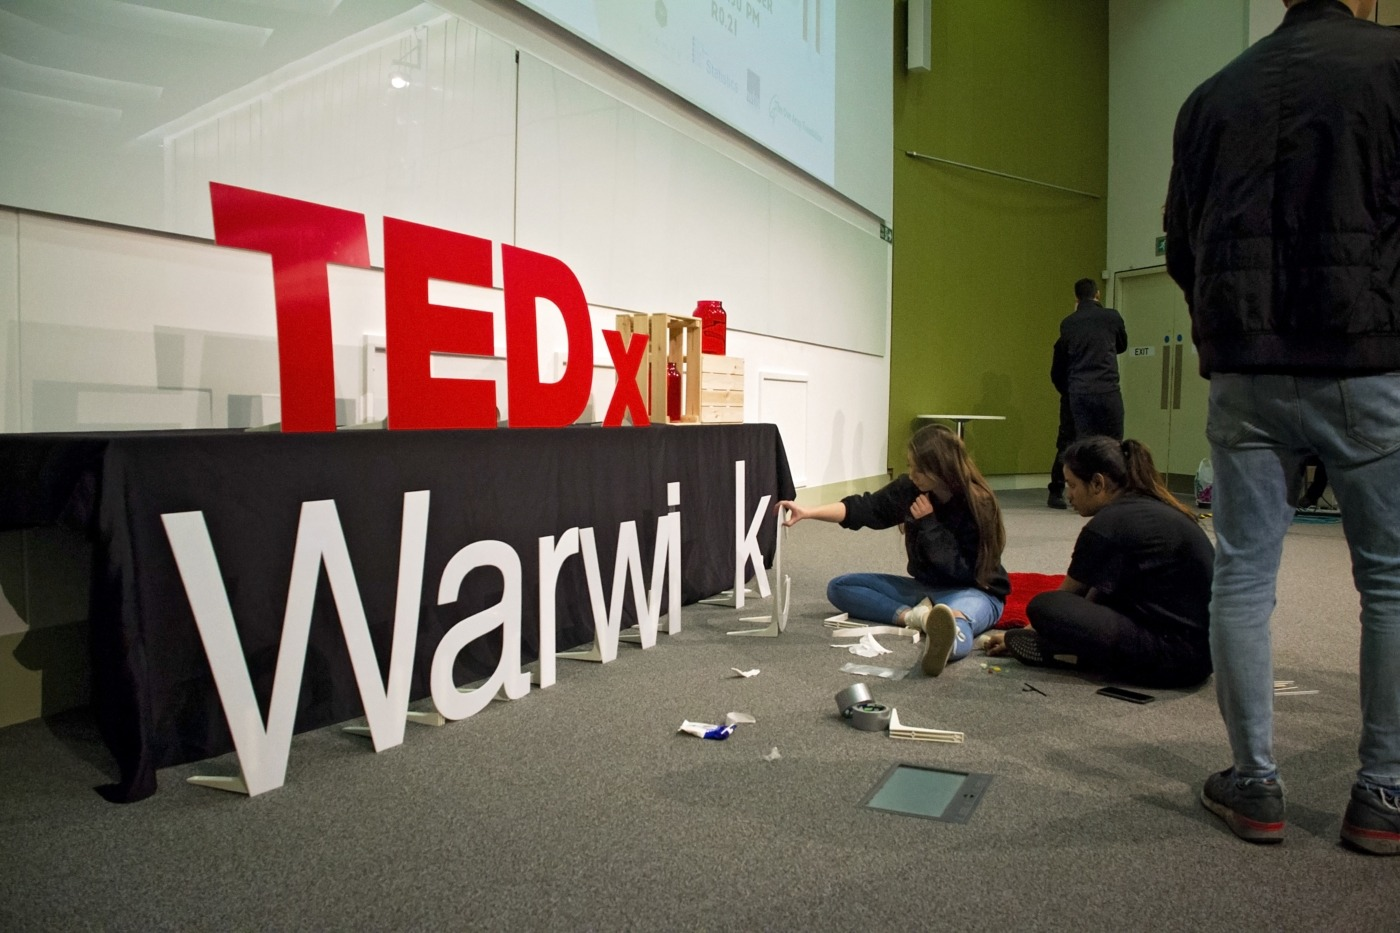 Image: TEDxWarwick / Flickr